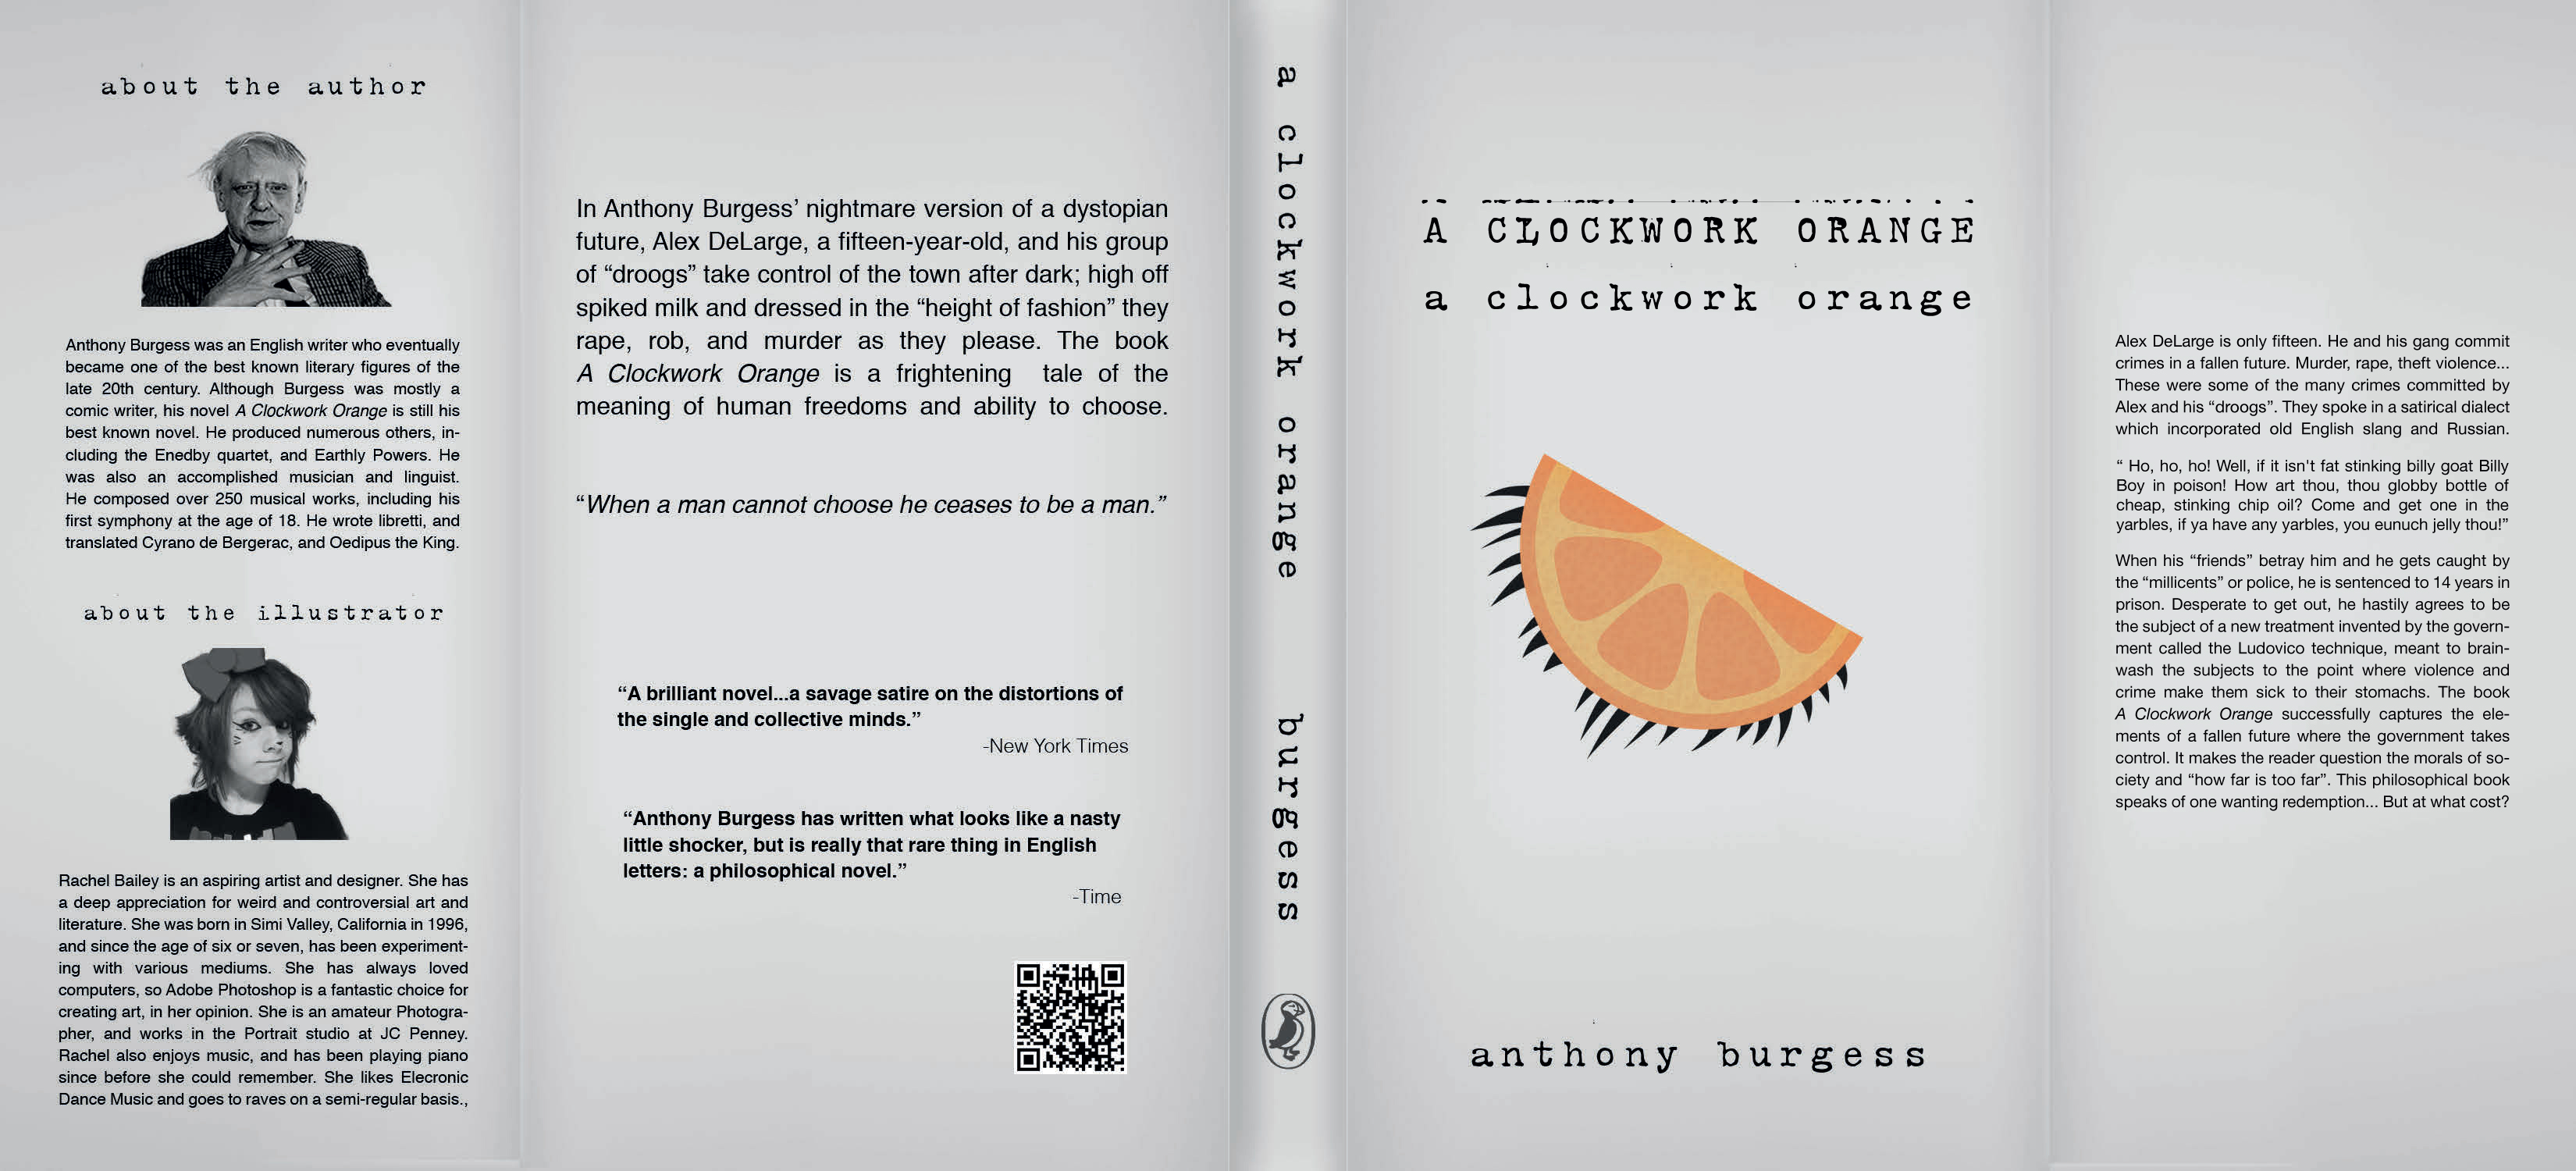 Fashion Book Cover Job : A clockwork orange book cover redesign by itsrachul on